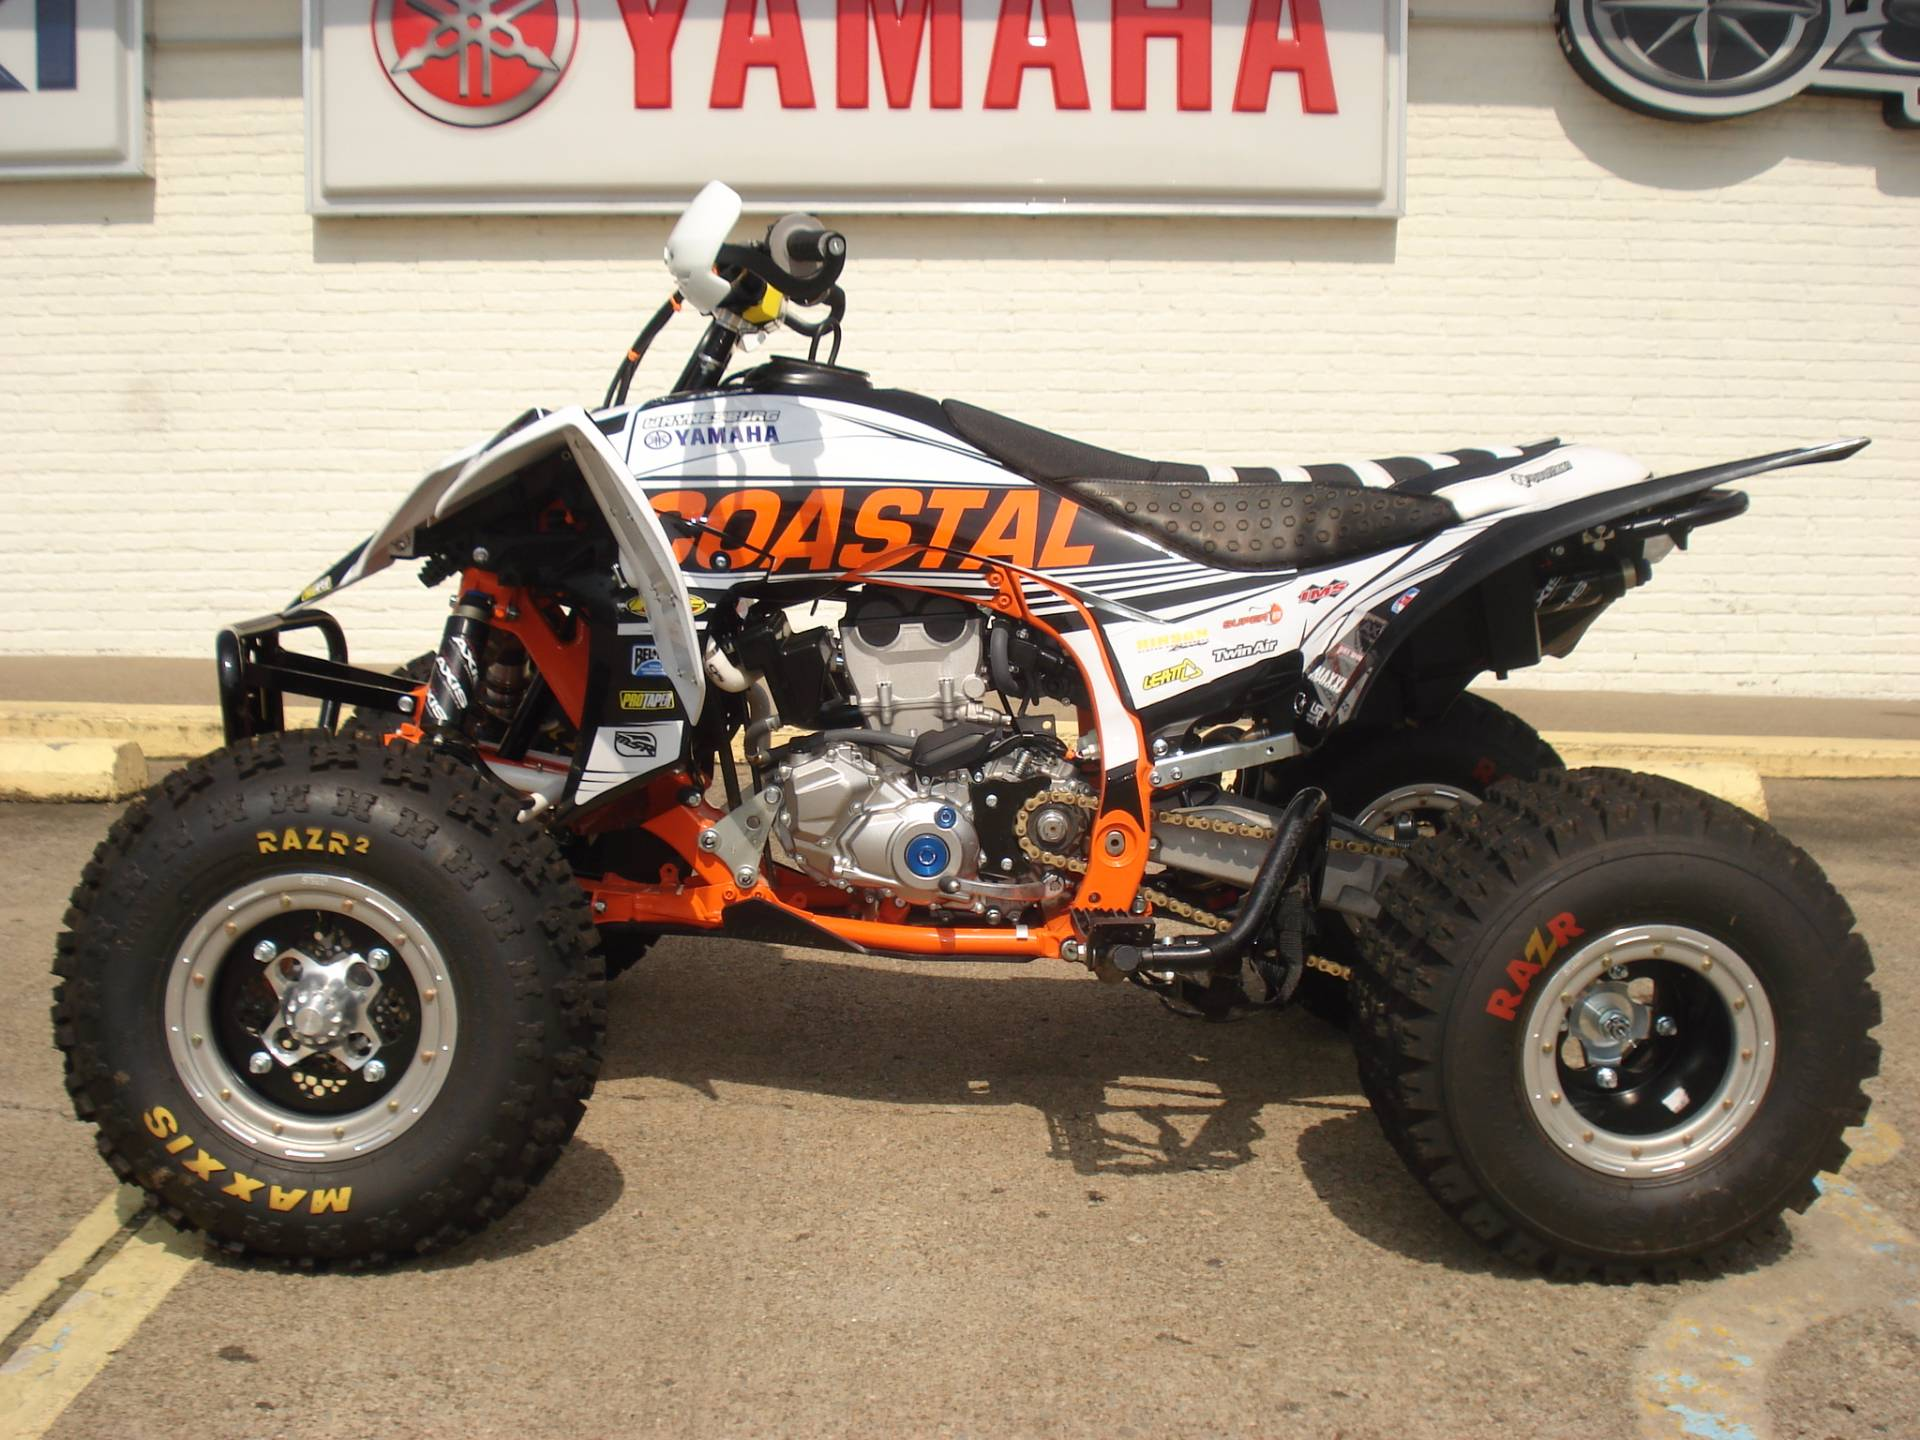 2015 Yamaha YFZ450R for sale 49833